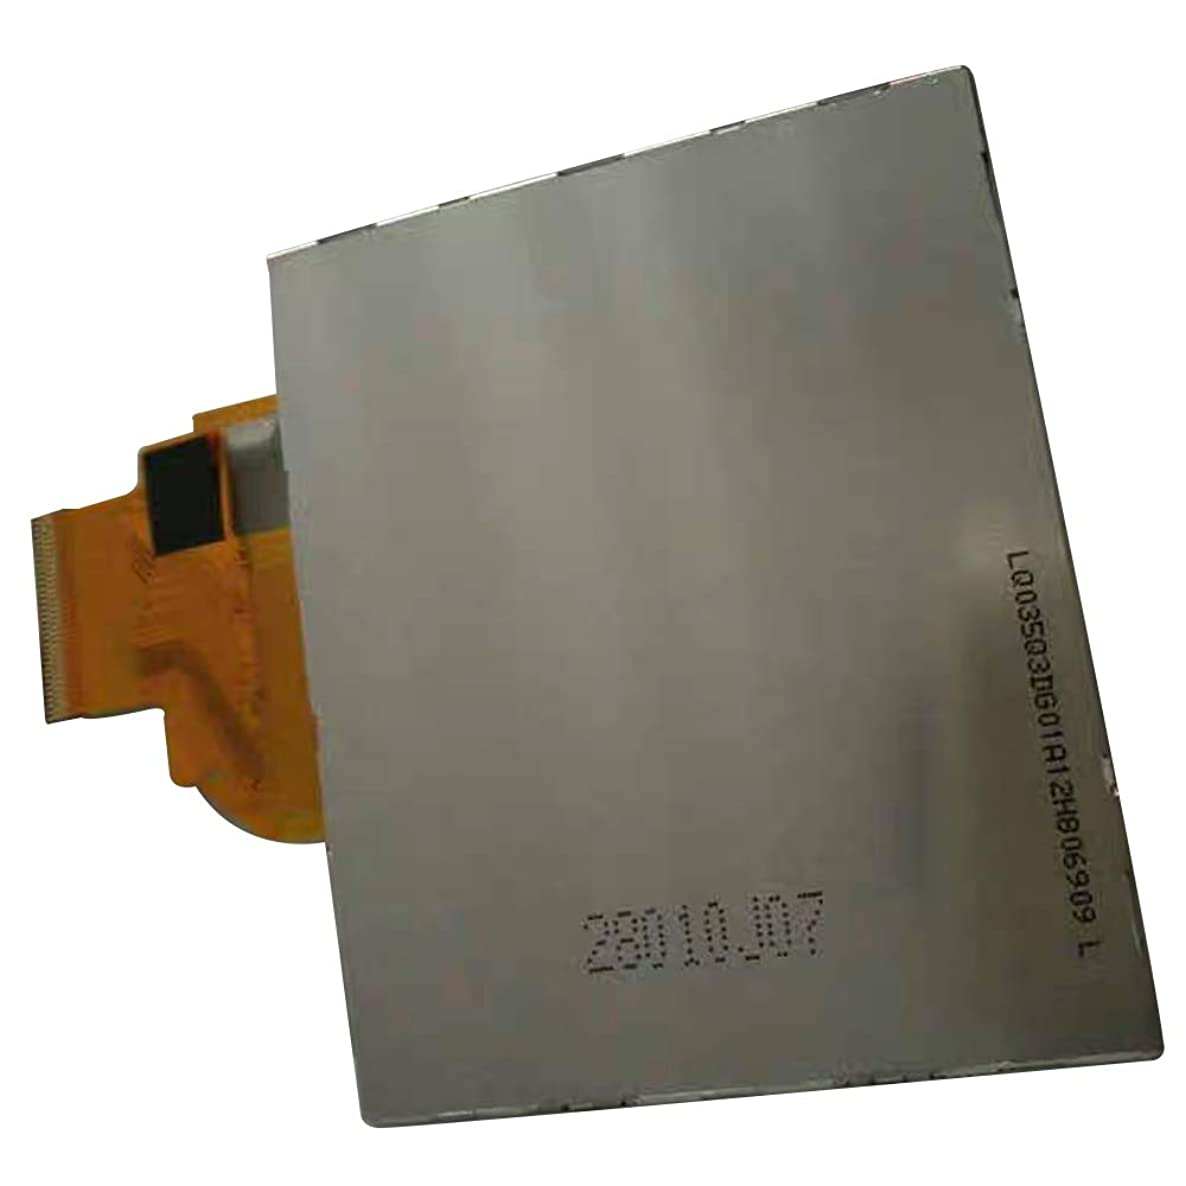 L&W 3.5 inch LCD Display Screen for Handheld & Industrial Panel Model Name LQ035Q3DG01 by L&W LCD